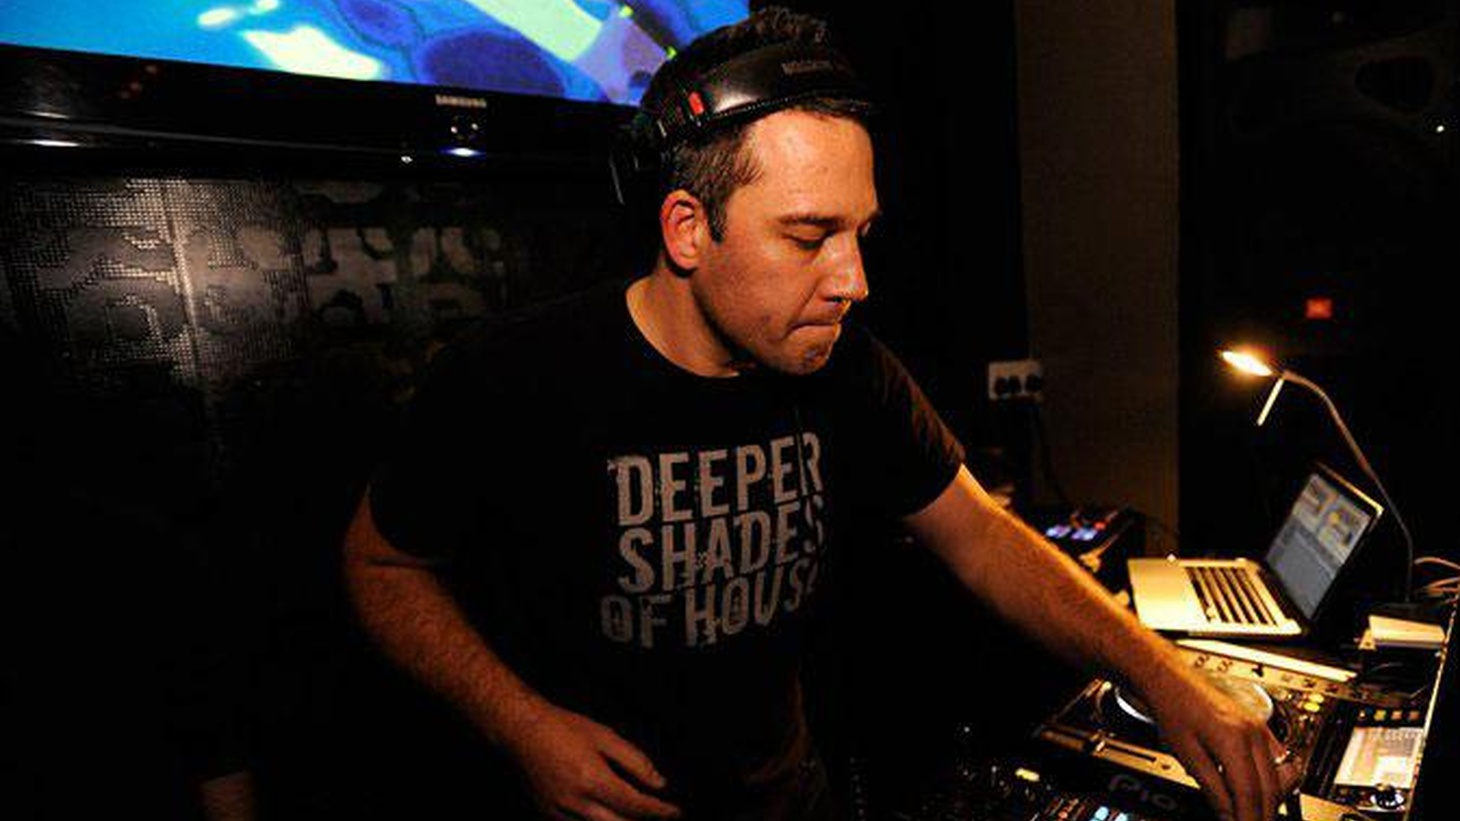 """In 2012, Lars Behrenroth's highly acclaimed and respected weekly two-hour radio show, """"Deeper Shades of House"""" is celebrating its 10-year anniversary."""